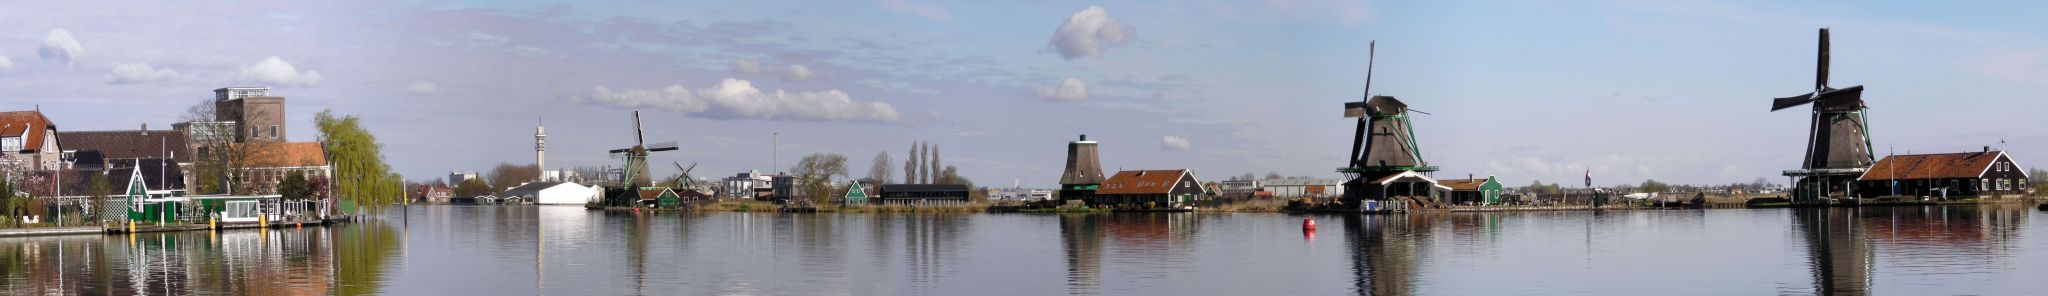 header image of expatinnl, questions about being an expat in the netherlands